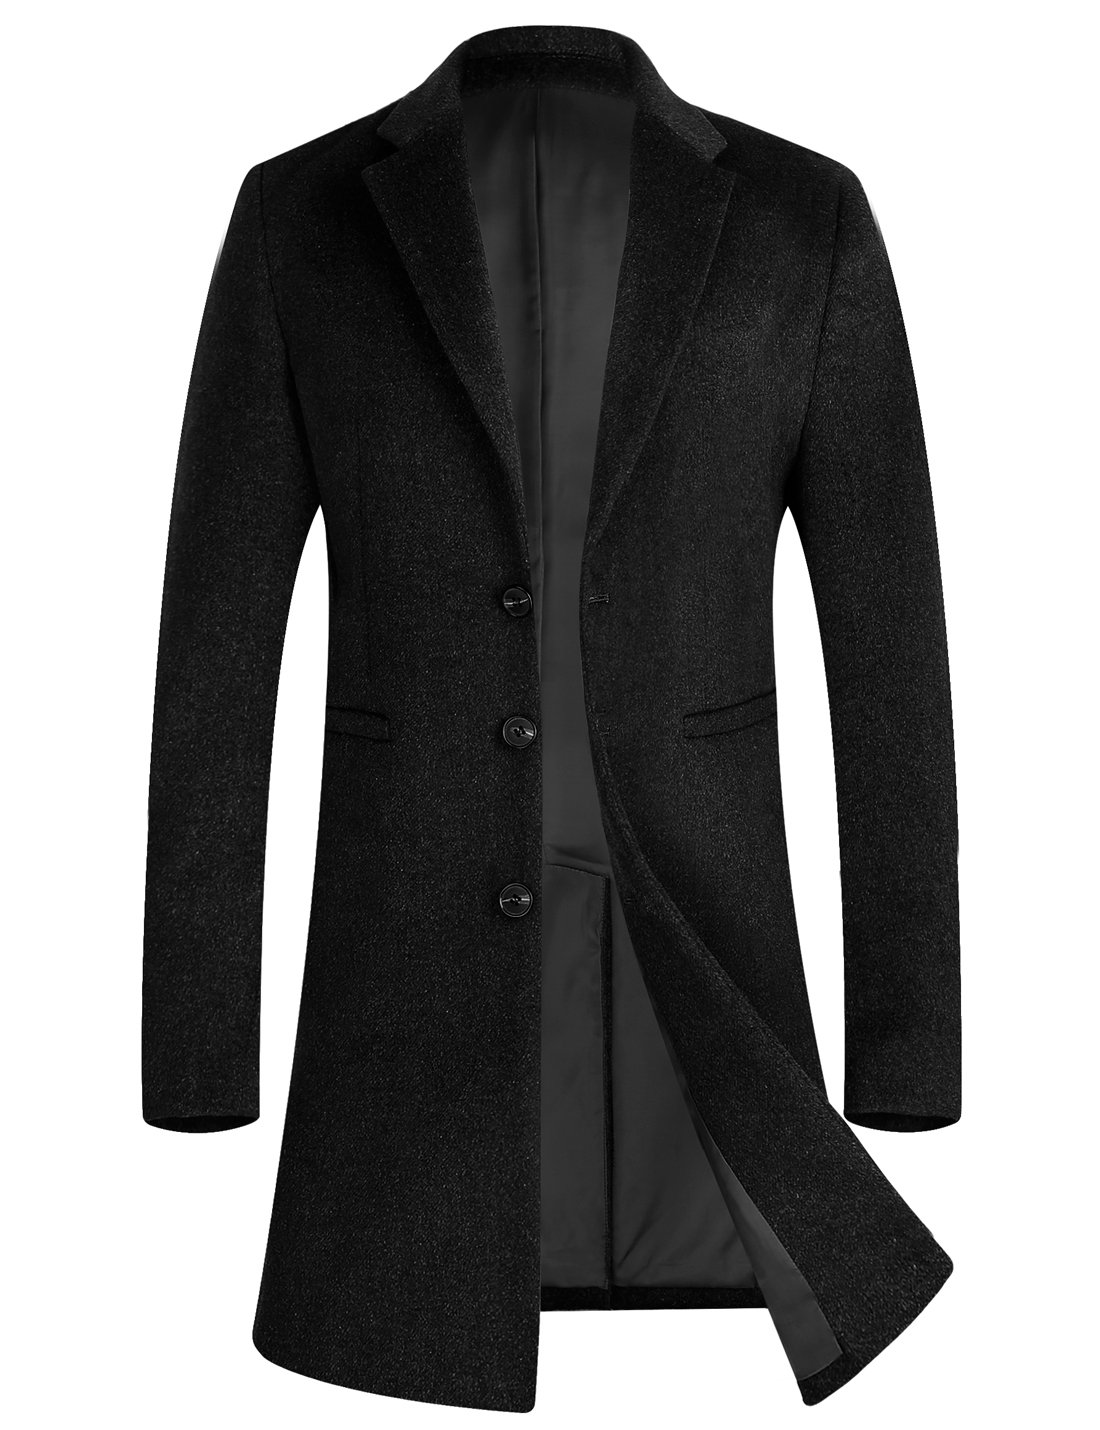 APTRO Men's Wool Trench Coat Knee Length Winter Busiiness Suits Long Jacket 1701 Black S by APTRO